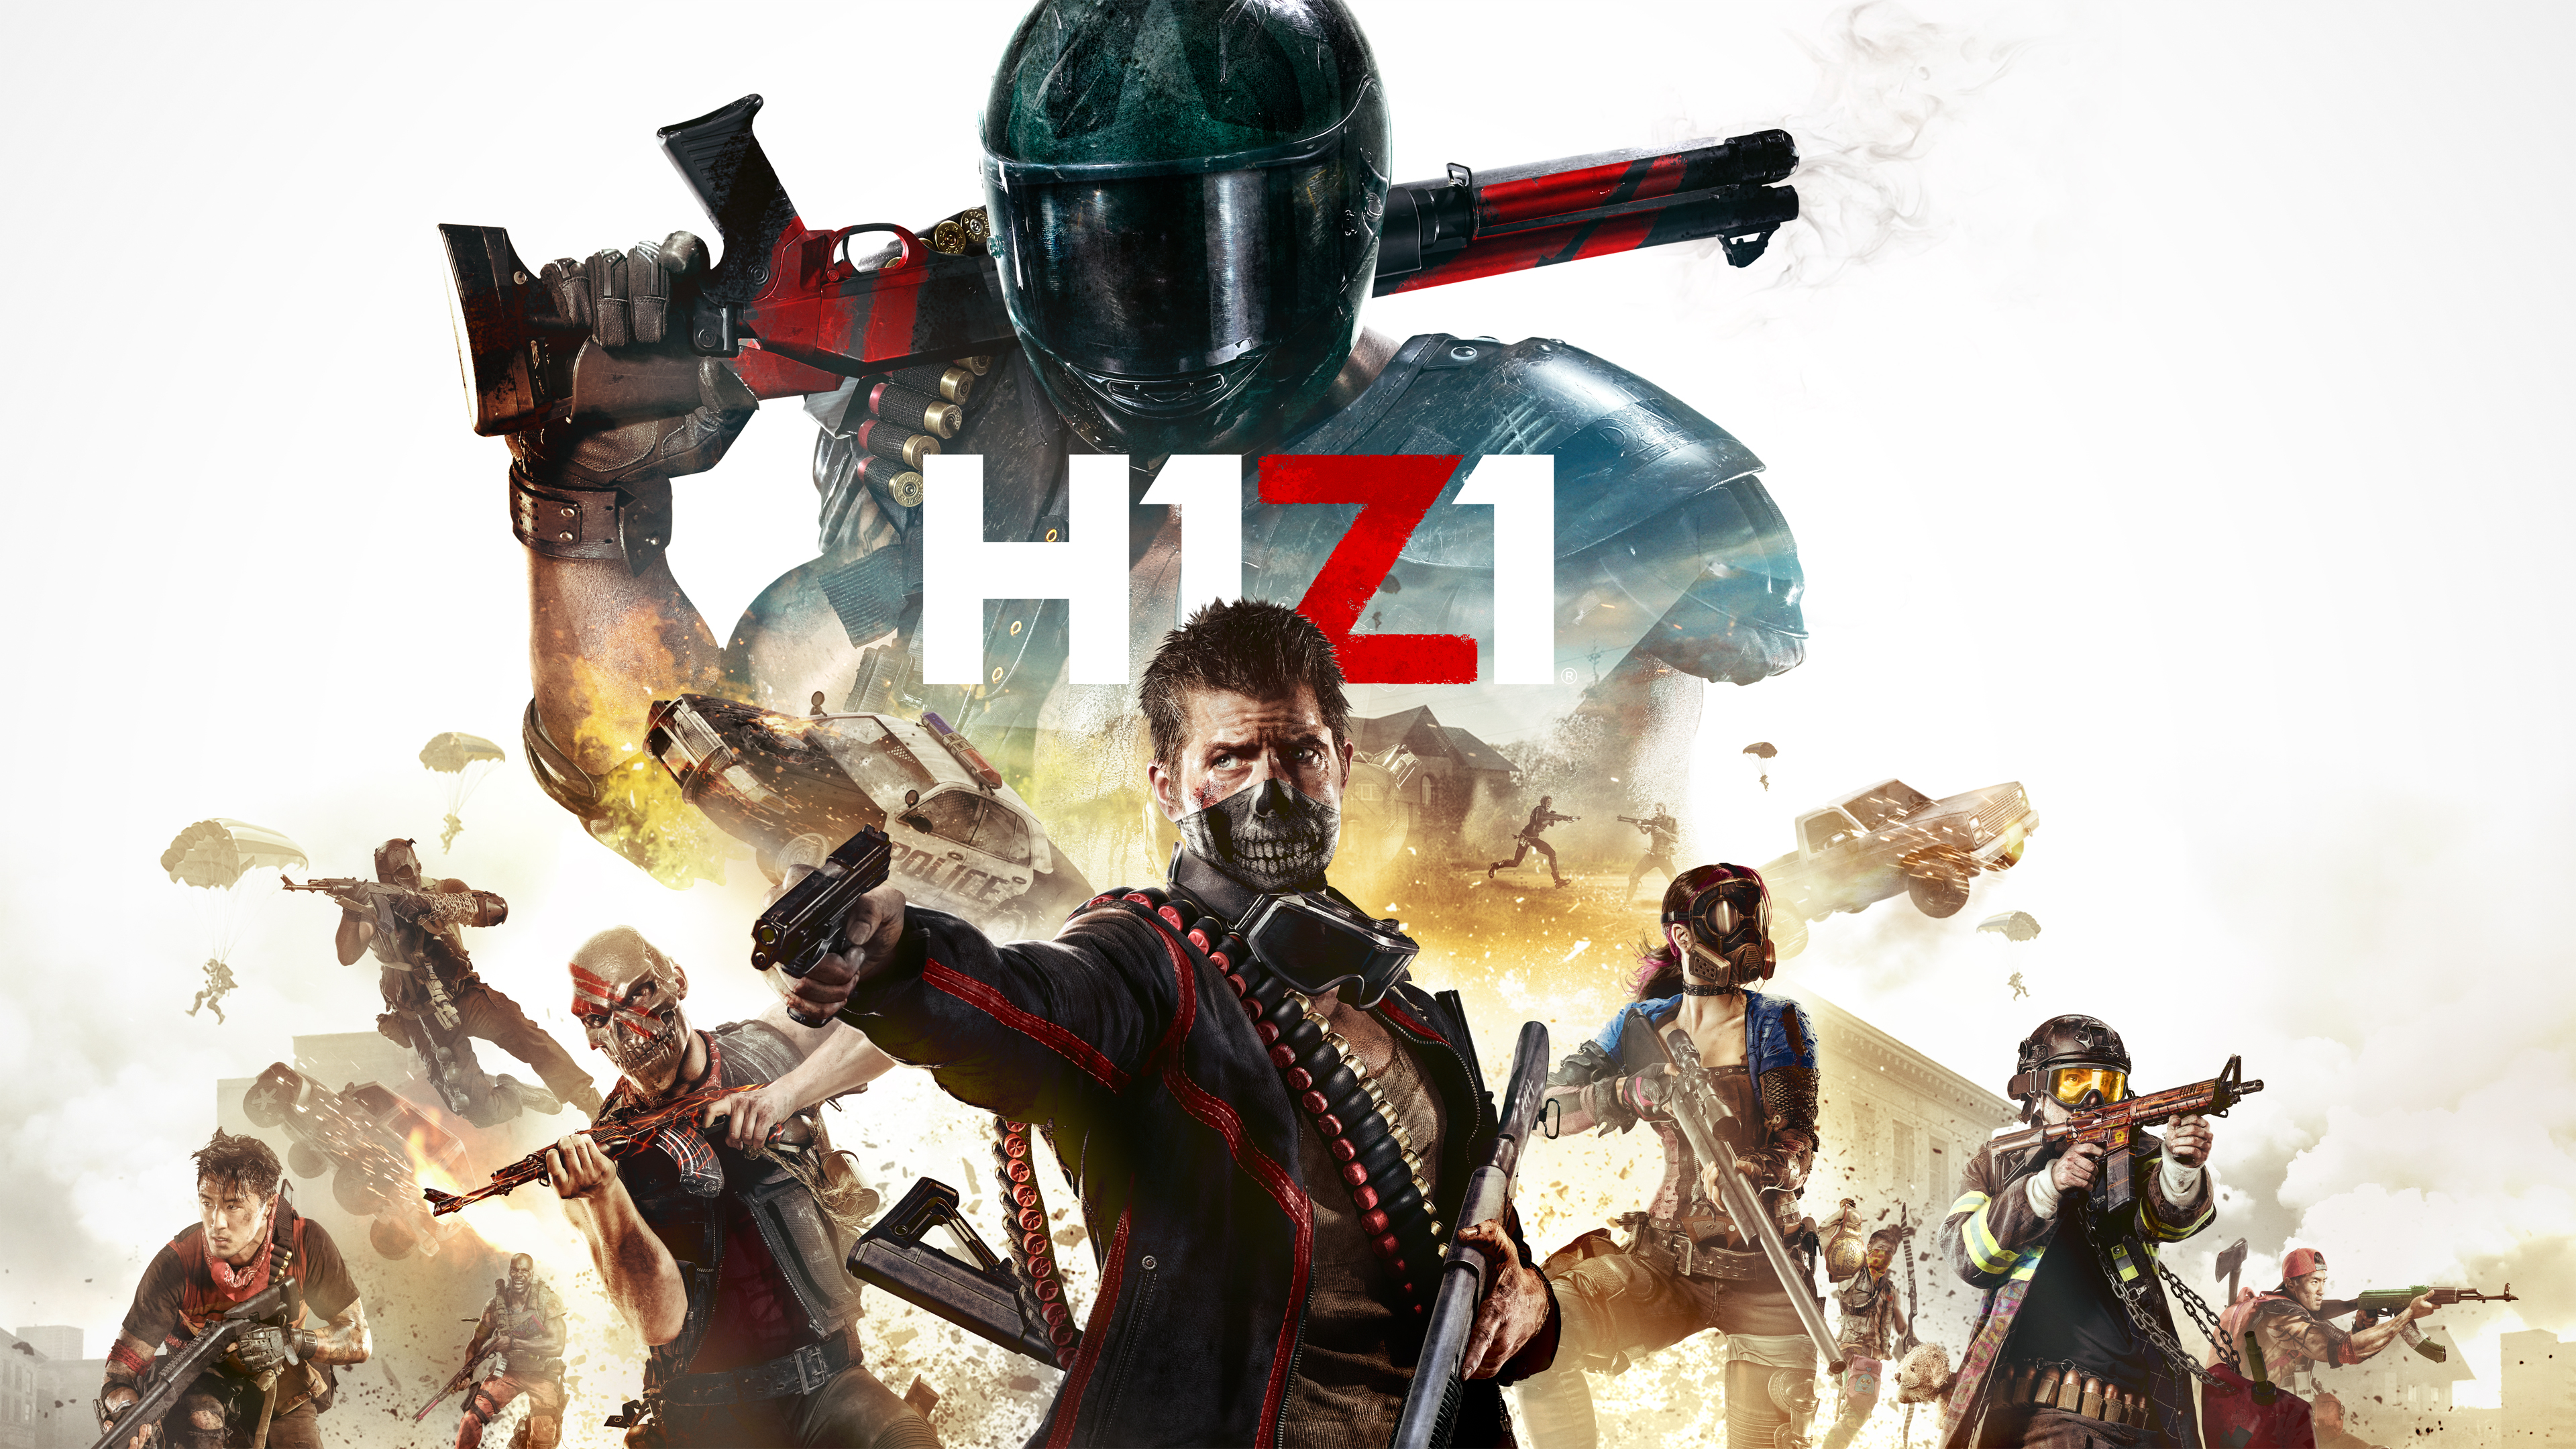 h1z1 king of the kill 4k, hd games, 4k wallpapers, images